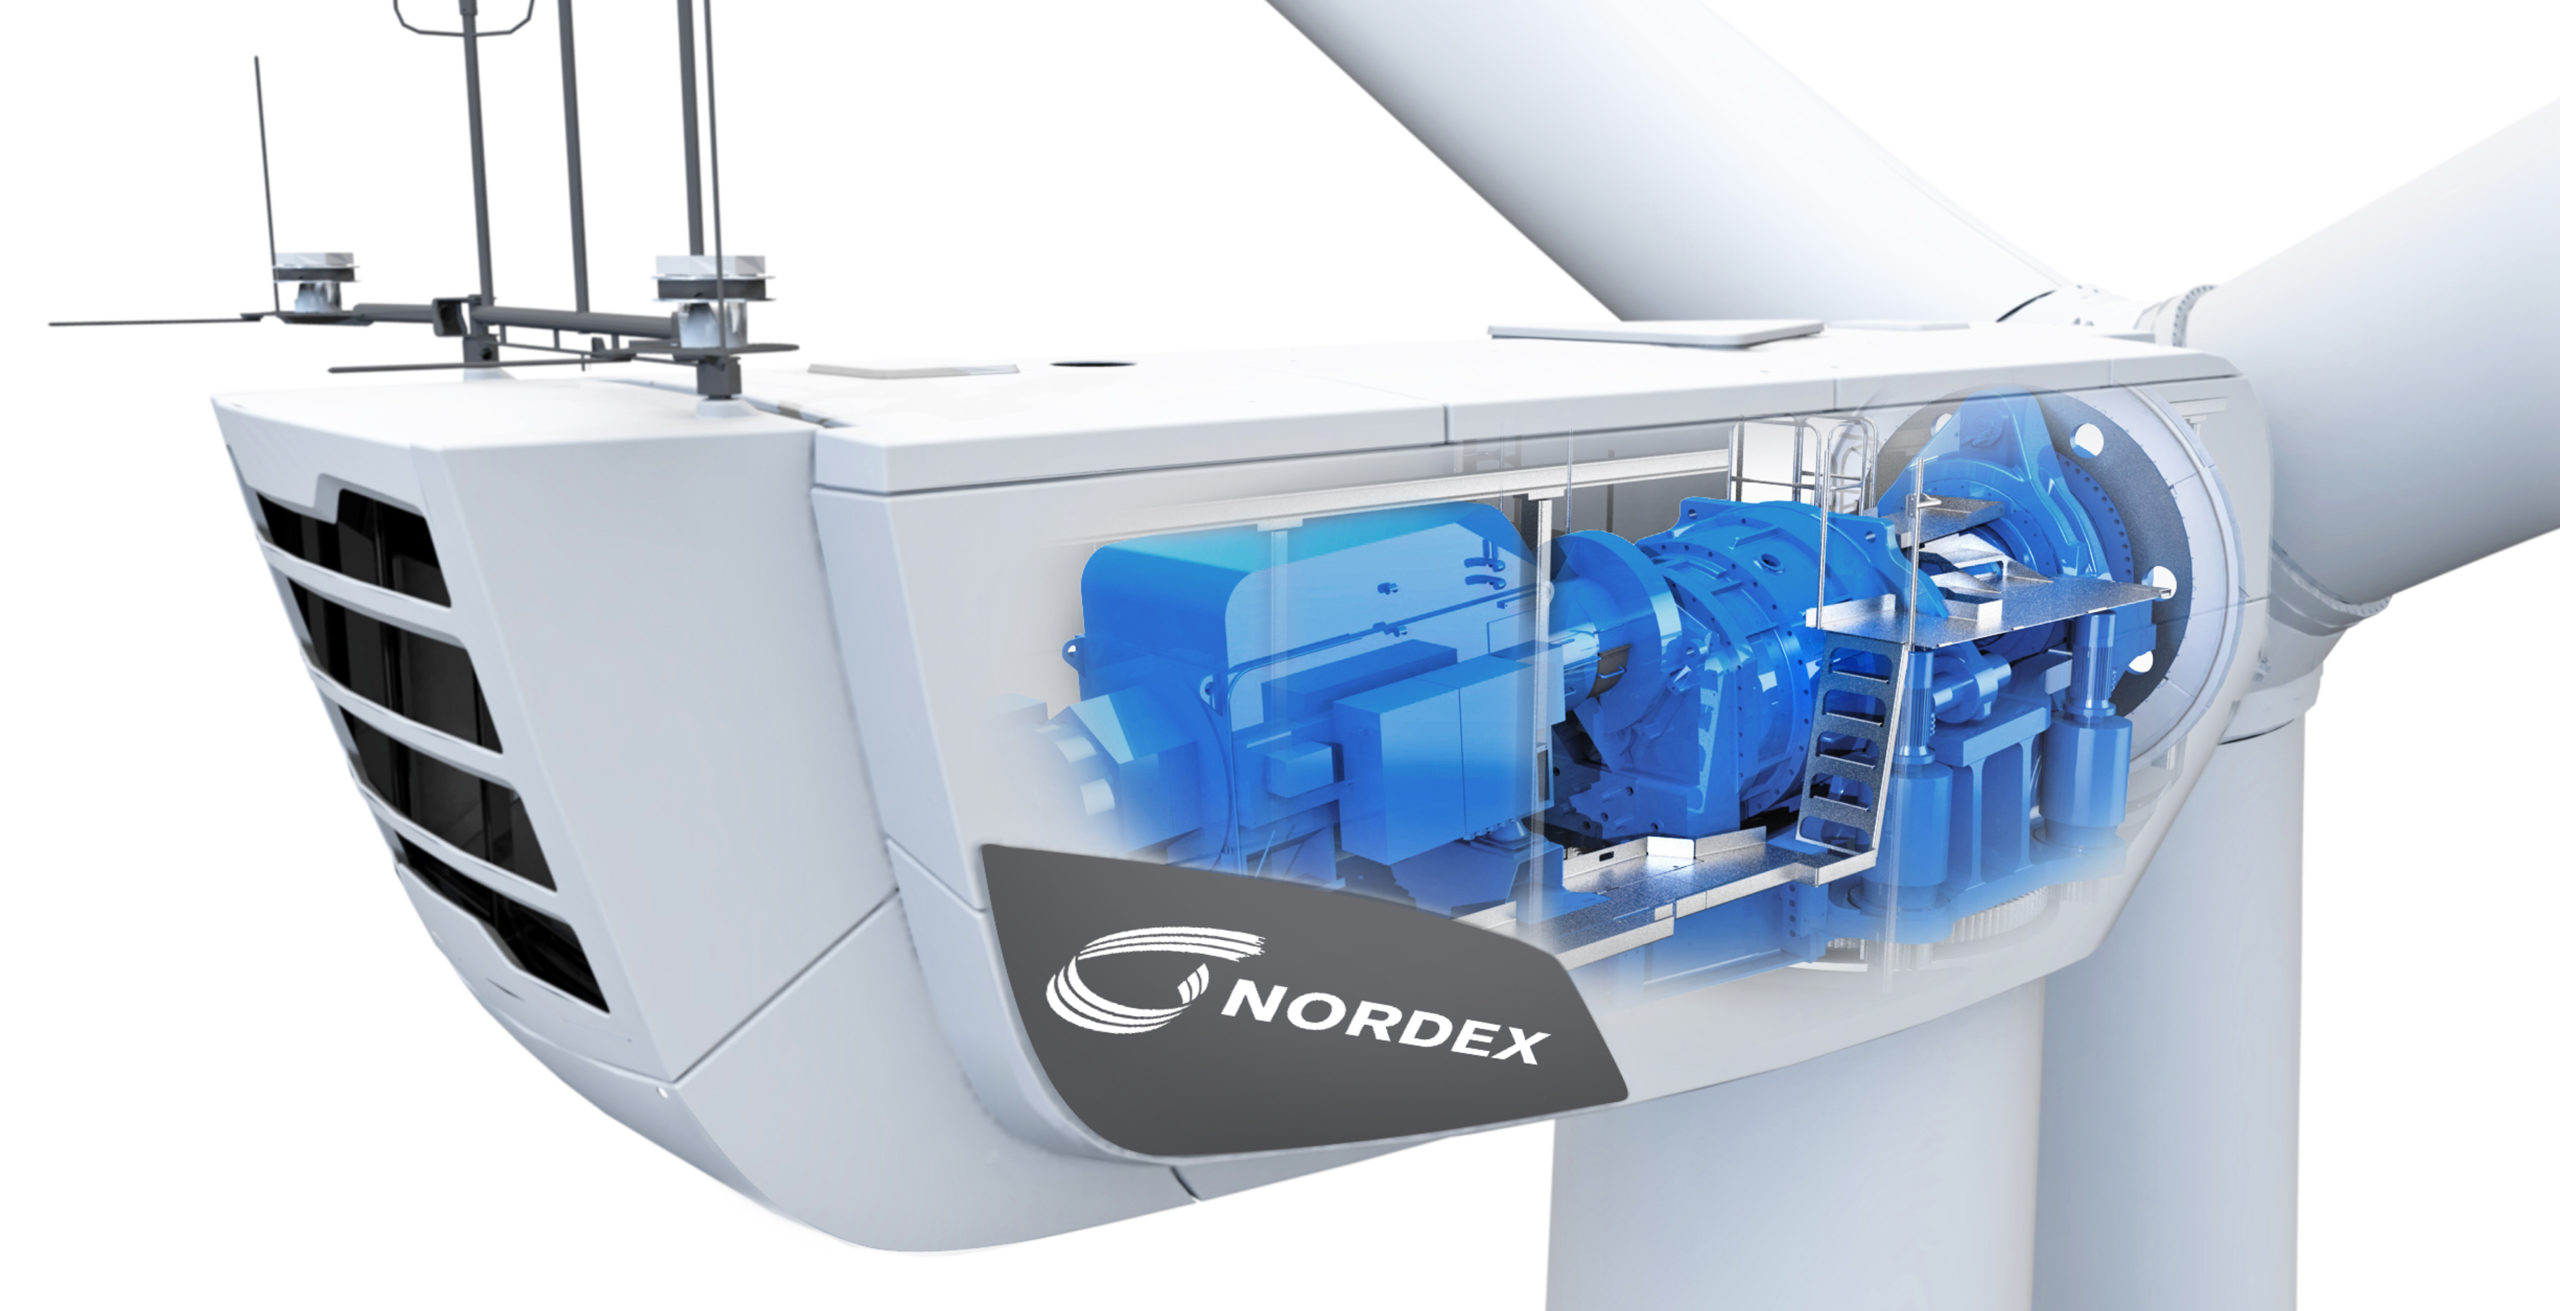 Nordex Group to supply turbines for HEP's first wind farm